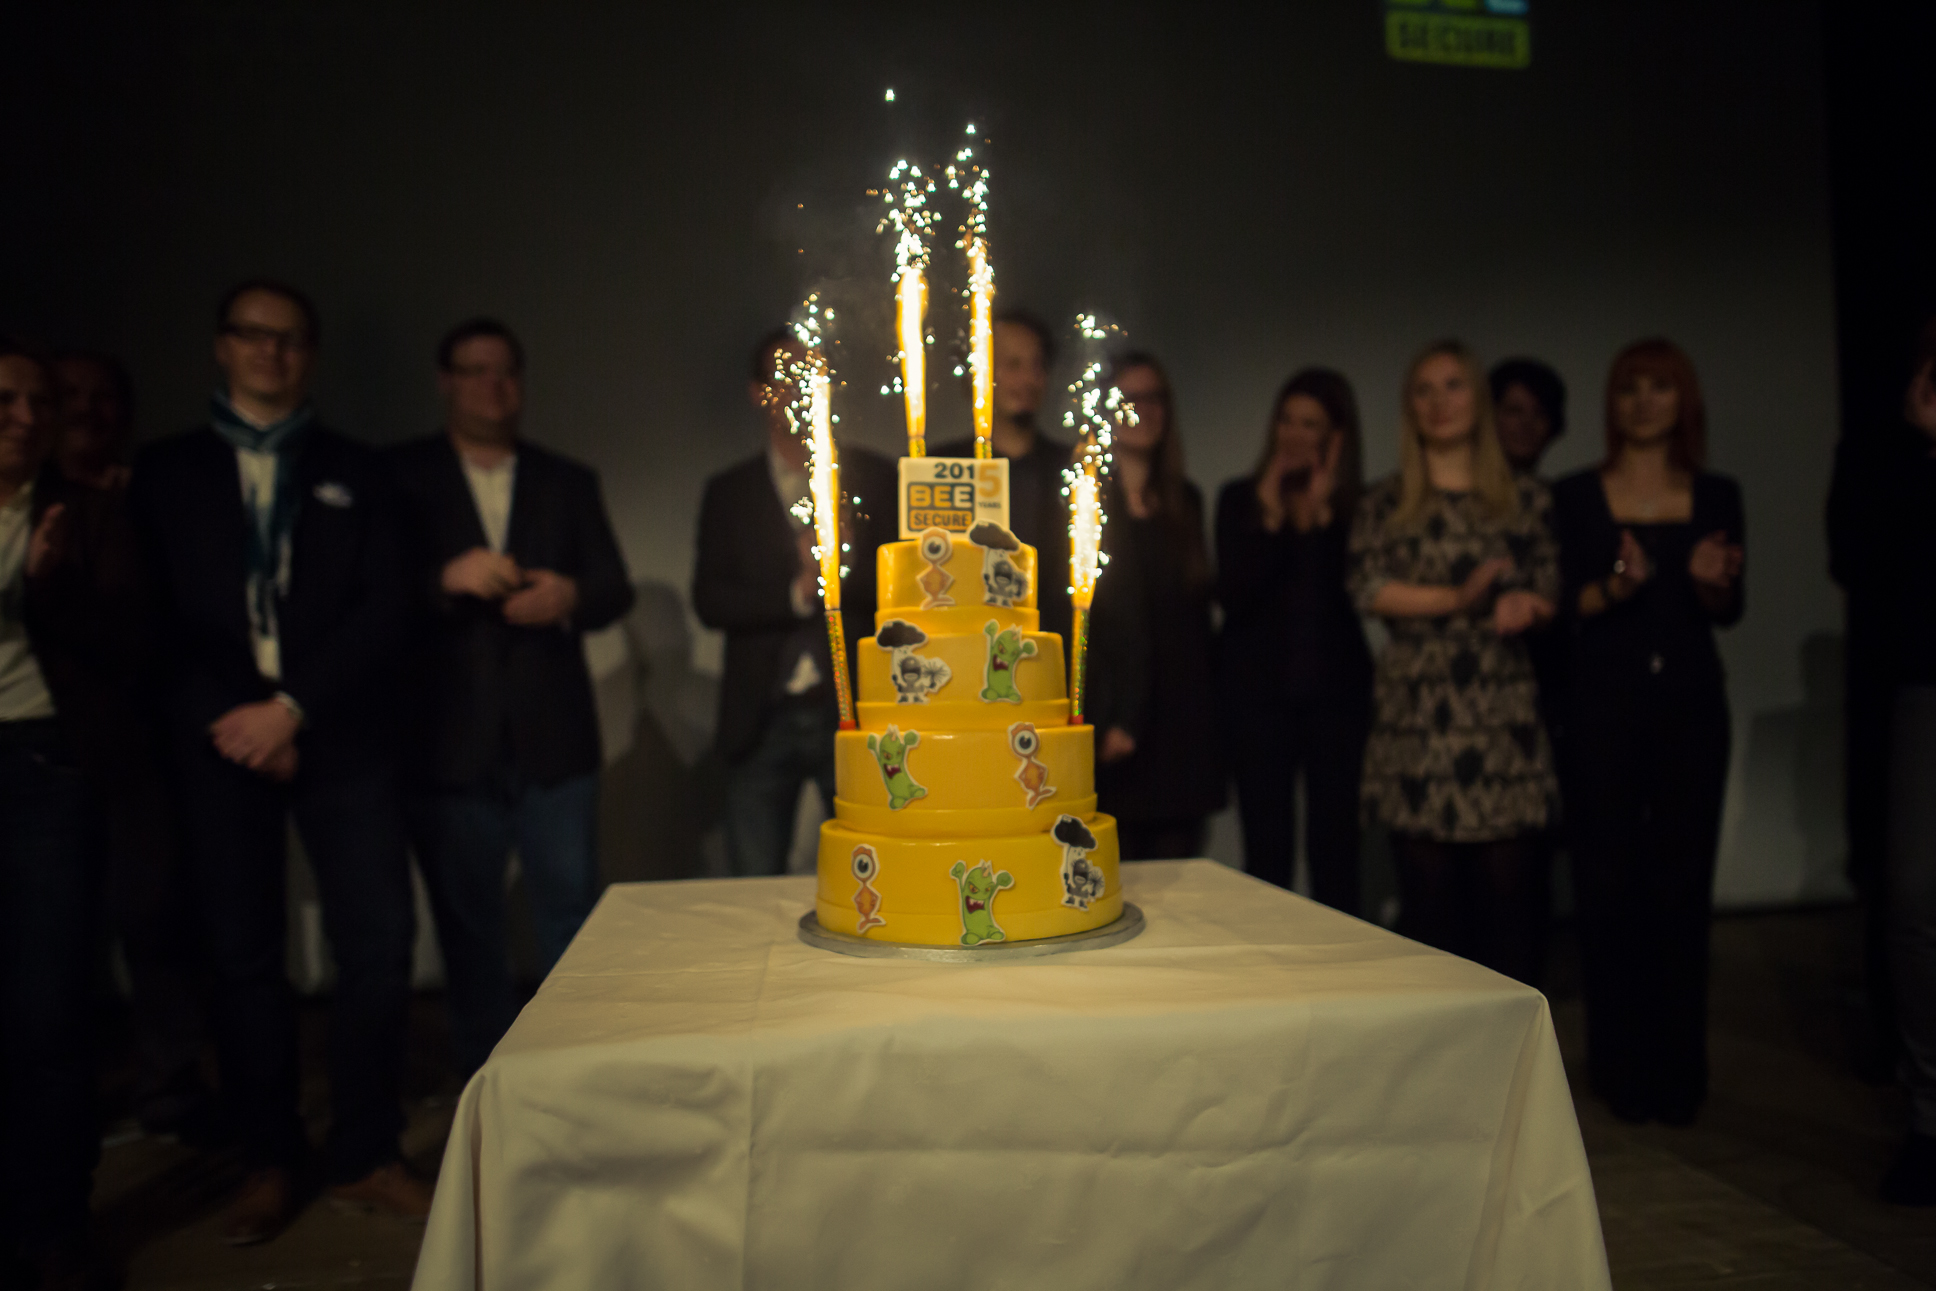 2015.10.09 - 5 Jahre BeeSecure-216